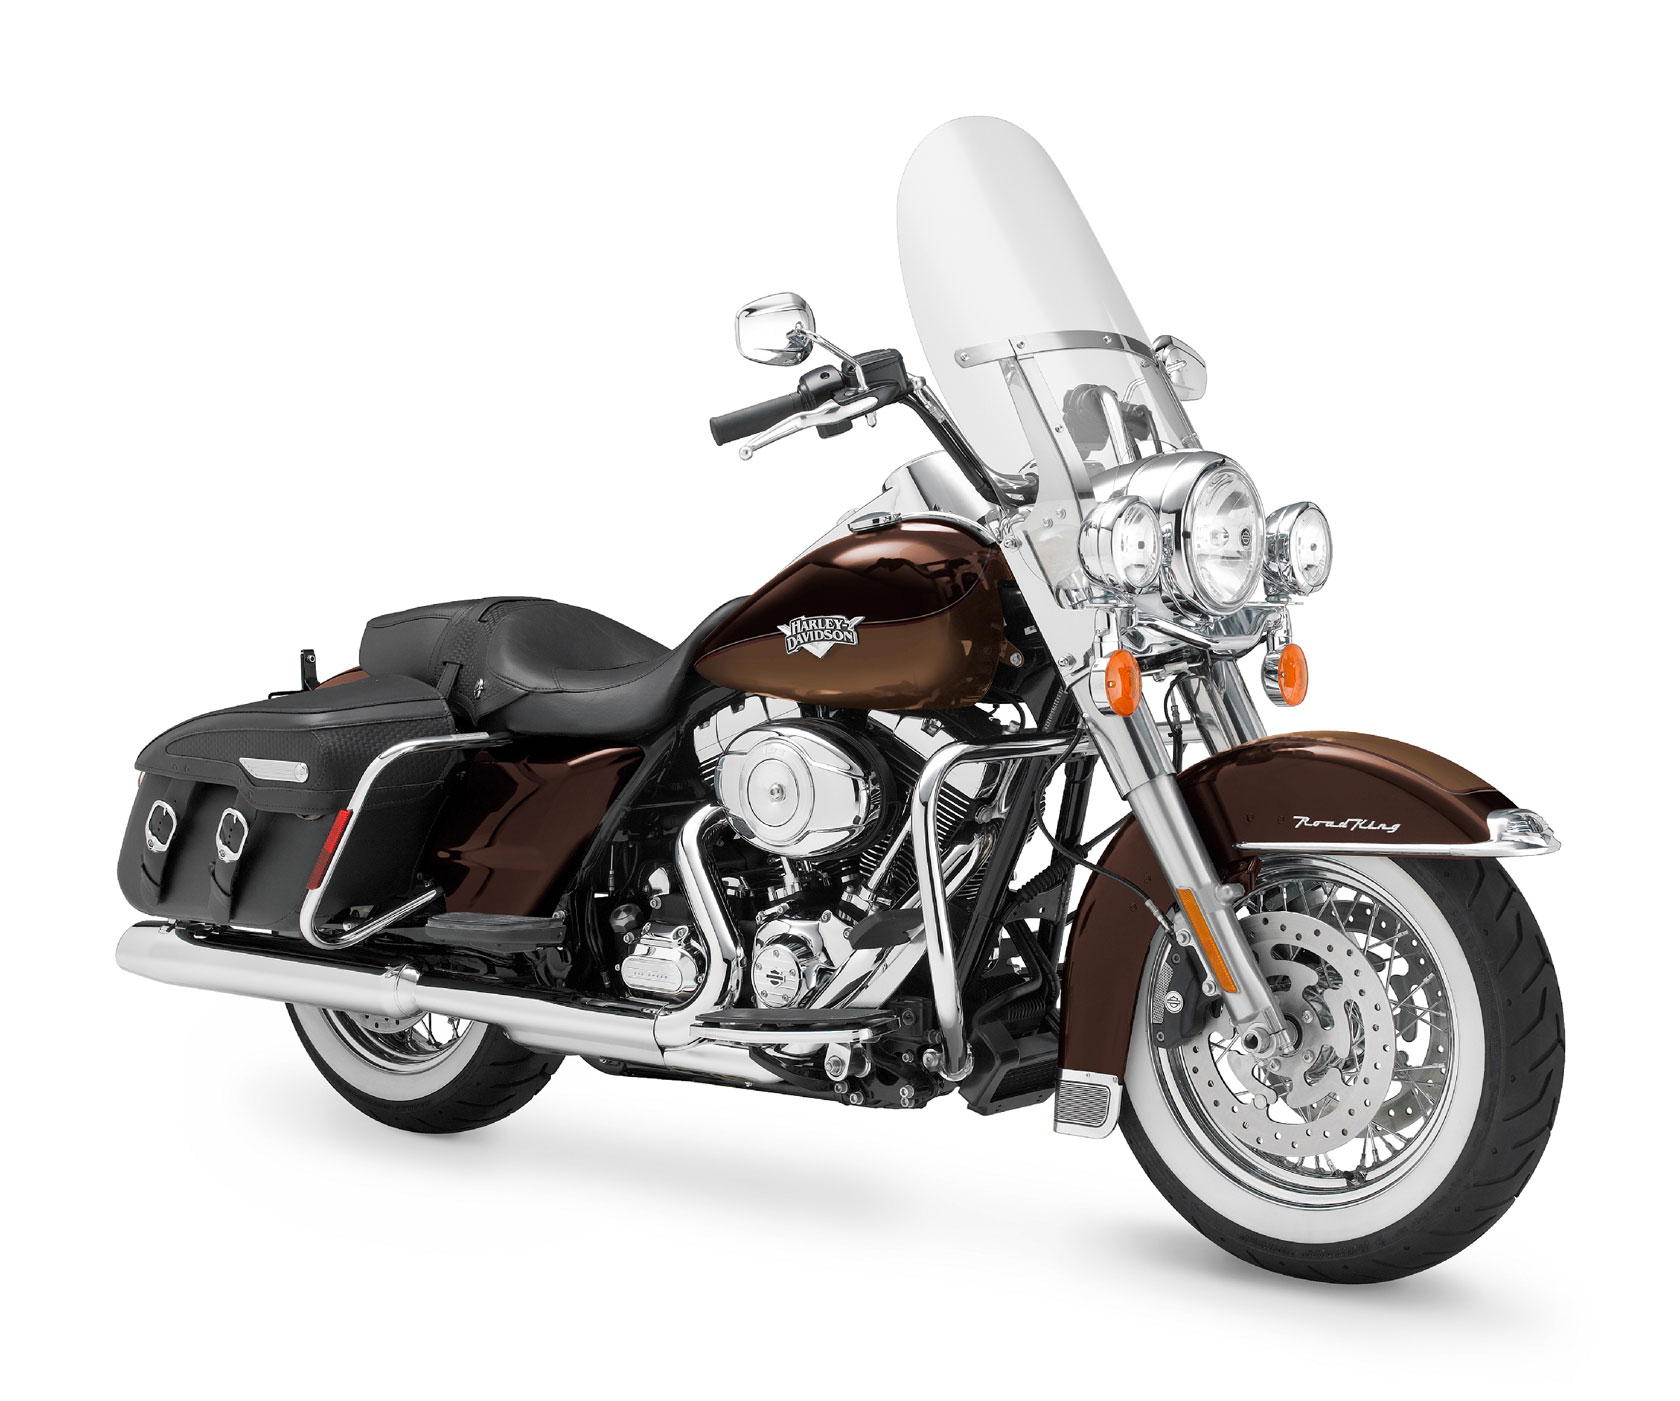 Harley-Davidson FLHRC Road King Classic 2011 images #81343